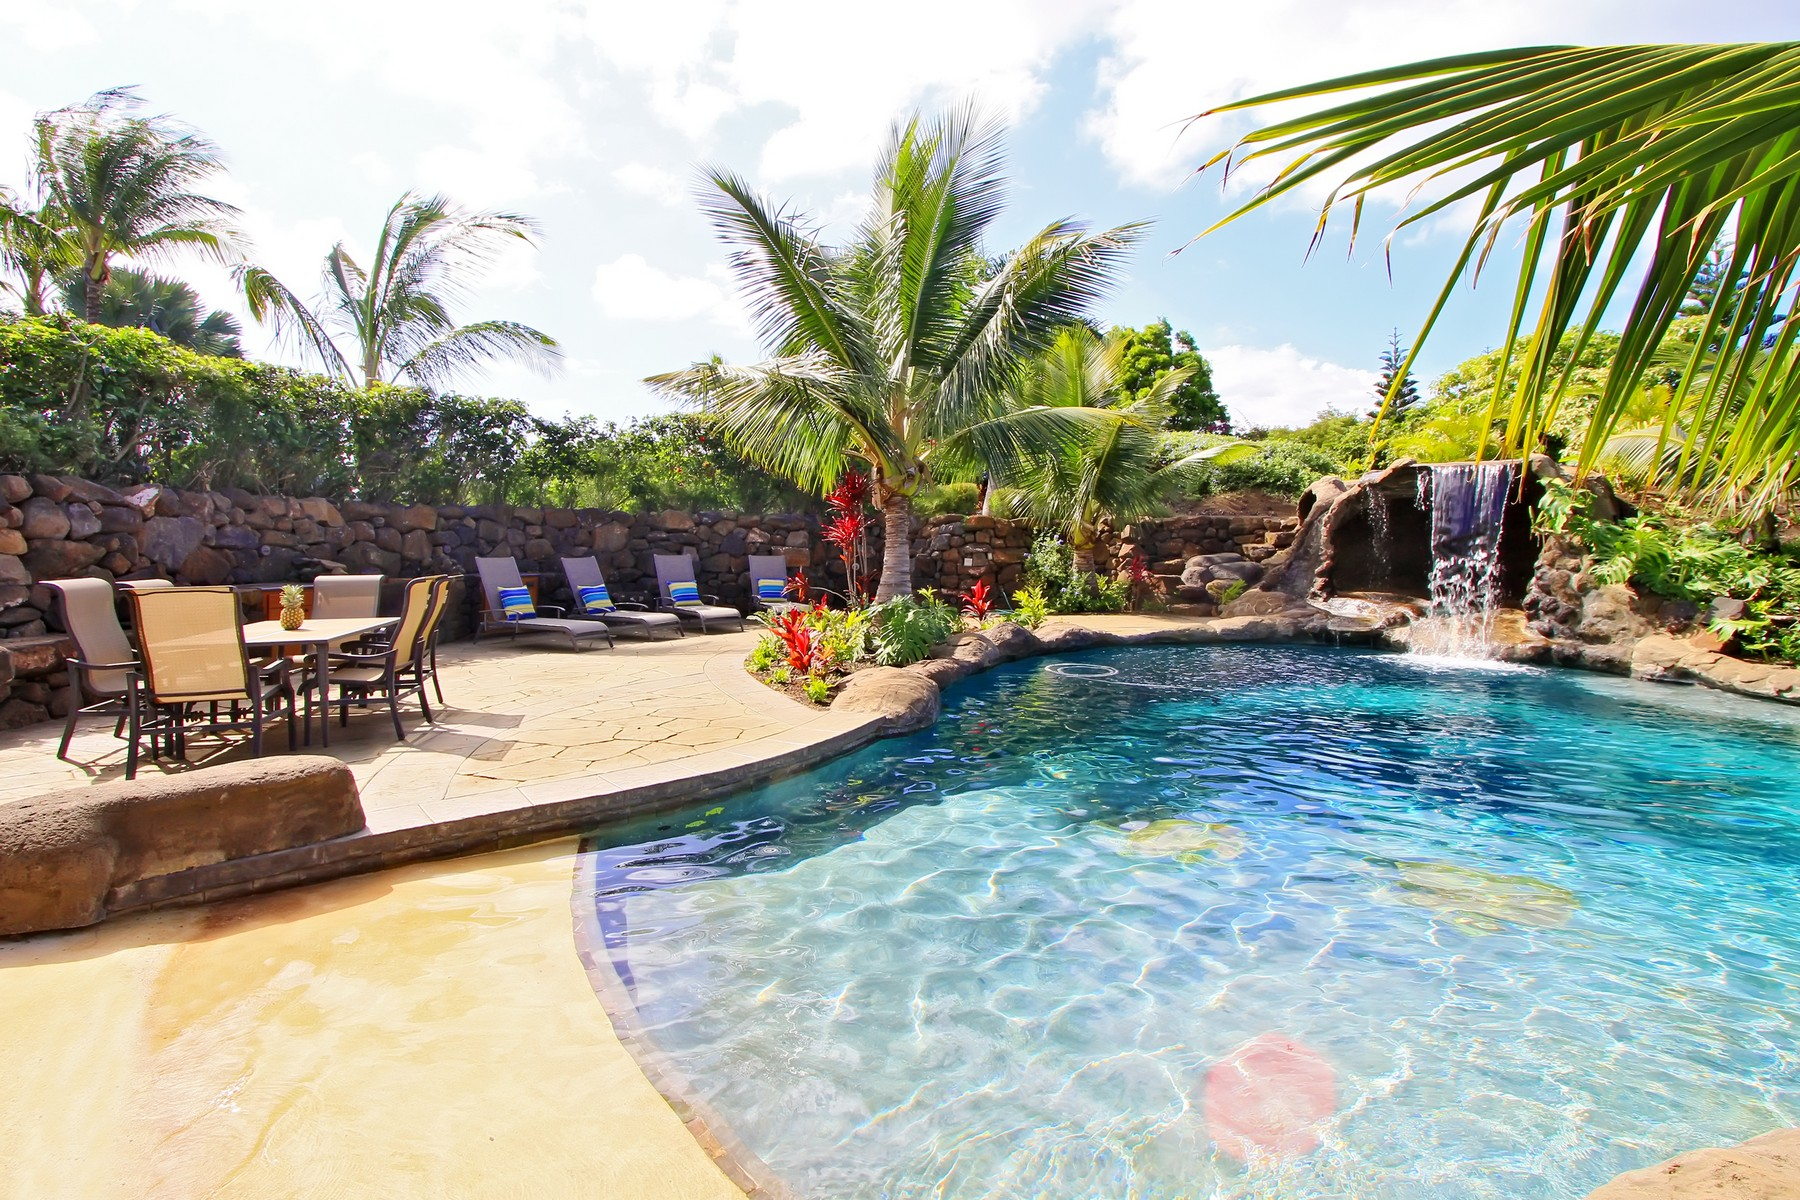 Tek Ailelik Ev için Satış at Extraordinary Maui Private Estate With Guest House & Pool Oasis 220 Ohaoha Place Makawao, Hawaii 96768 Amerika Birleşik Devletleri